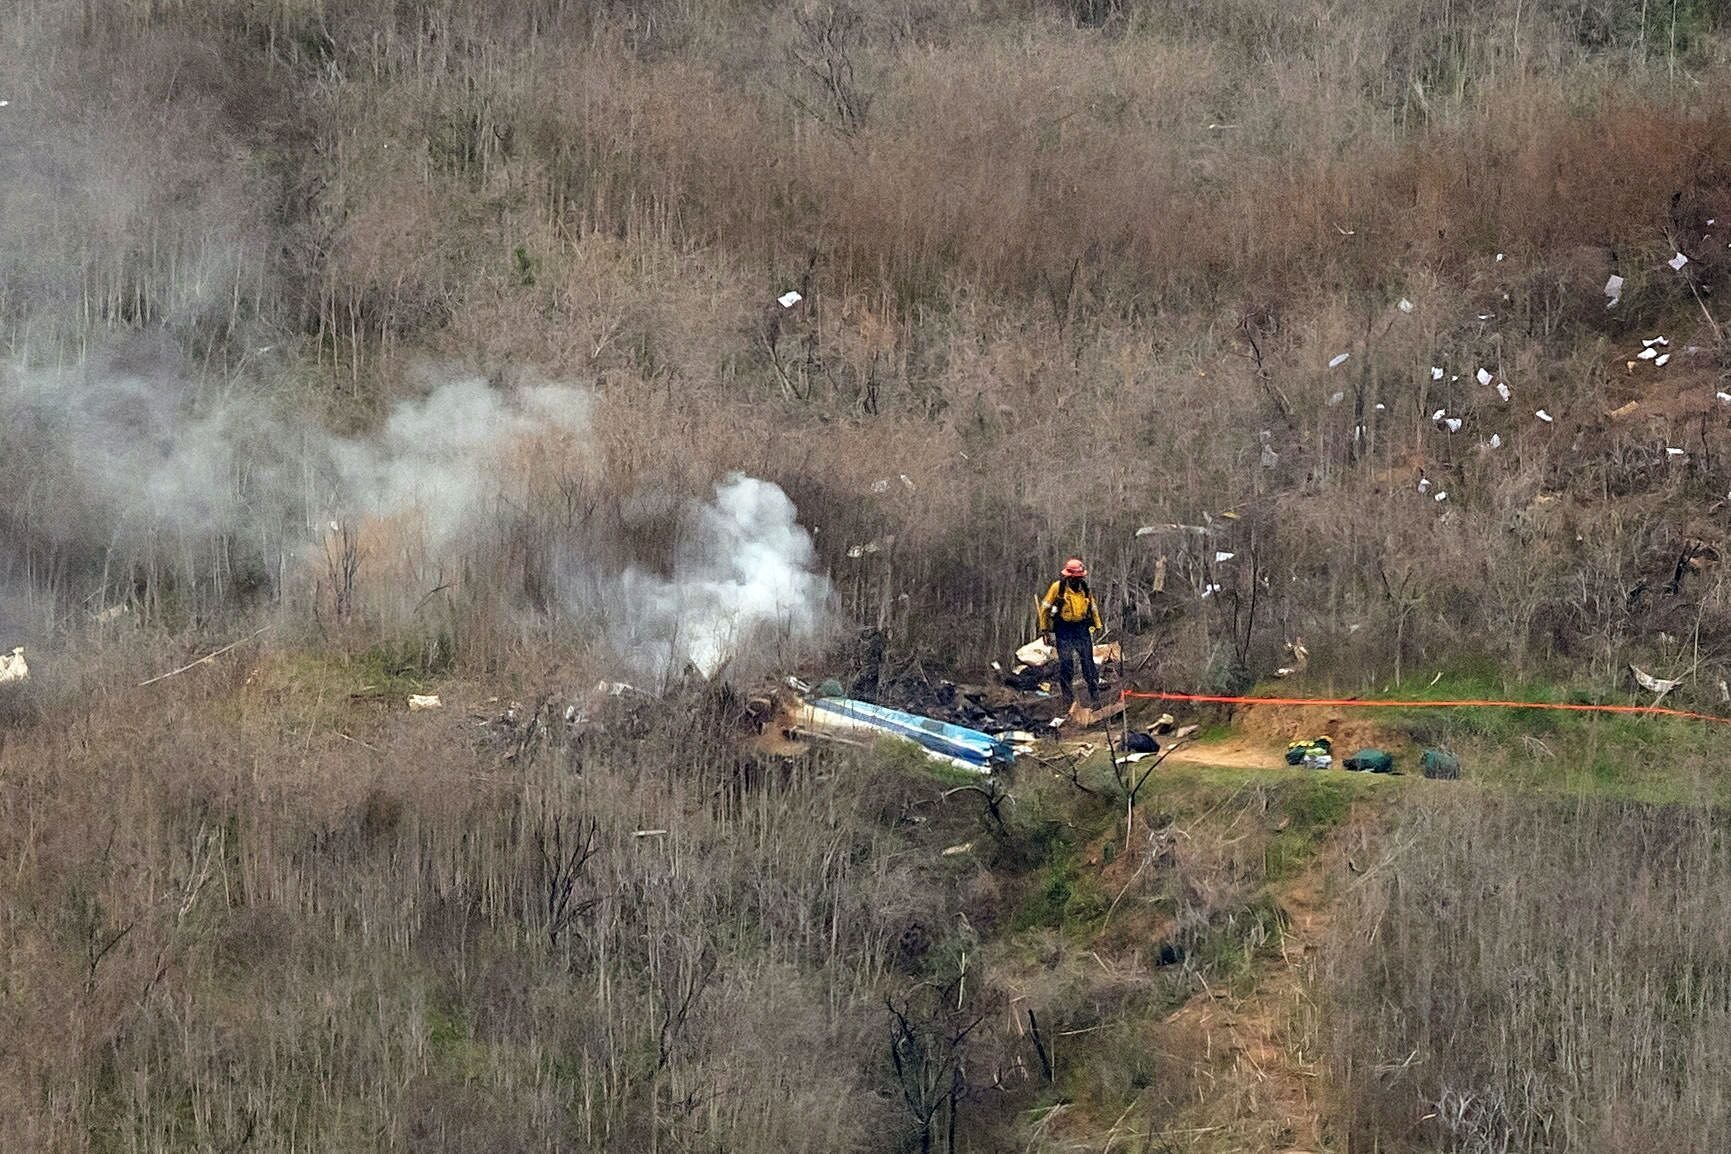 The crash-site of the helicopter Kobe Bryant died in on January 26, 2020  which was piloted by Ara Zobayan/ Source: Getty Images